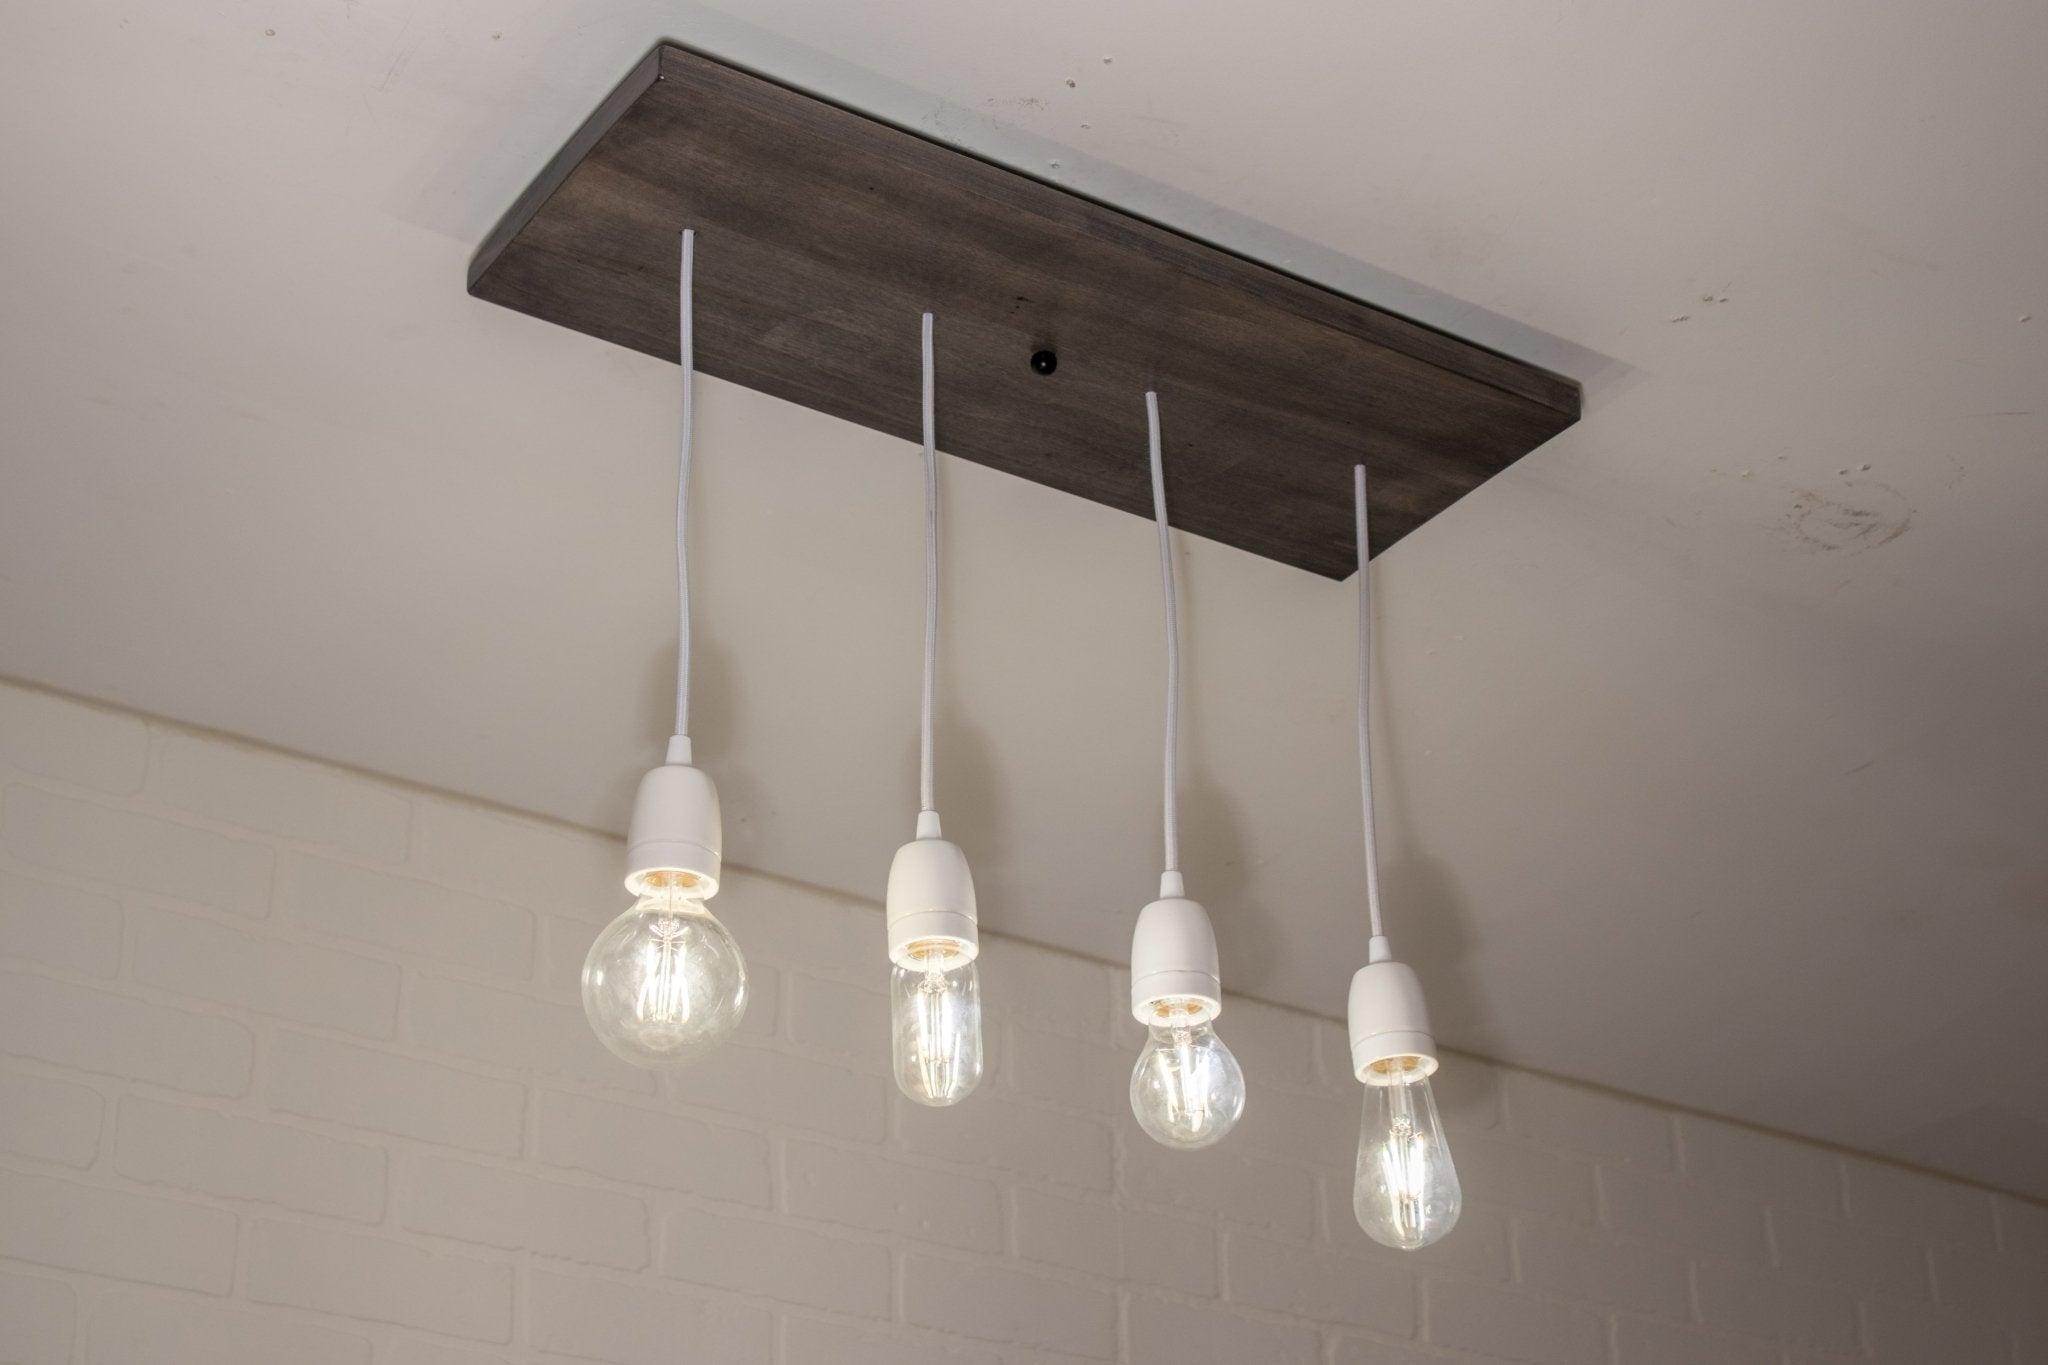 4 Pendant Wood Light with Ceramic Sockets - Loewen Design Studios